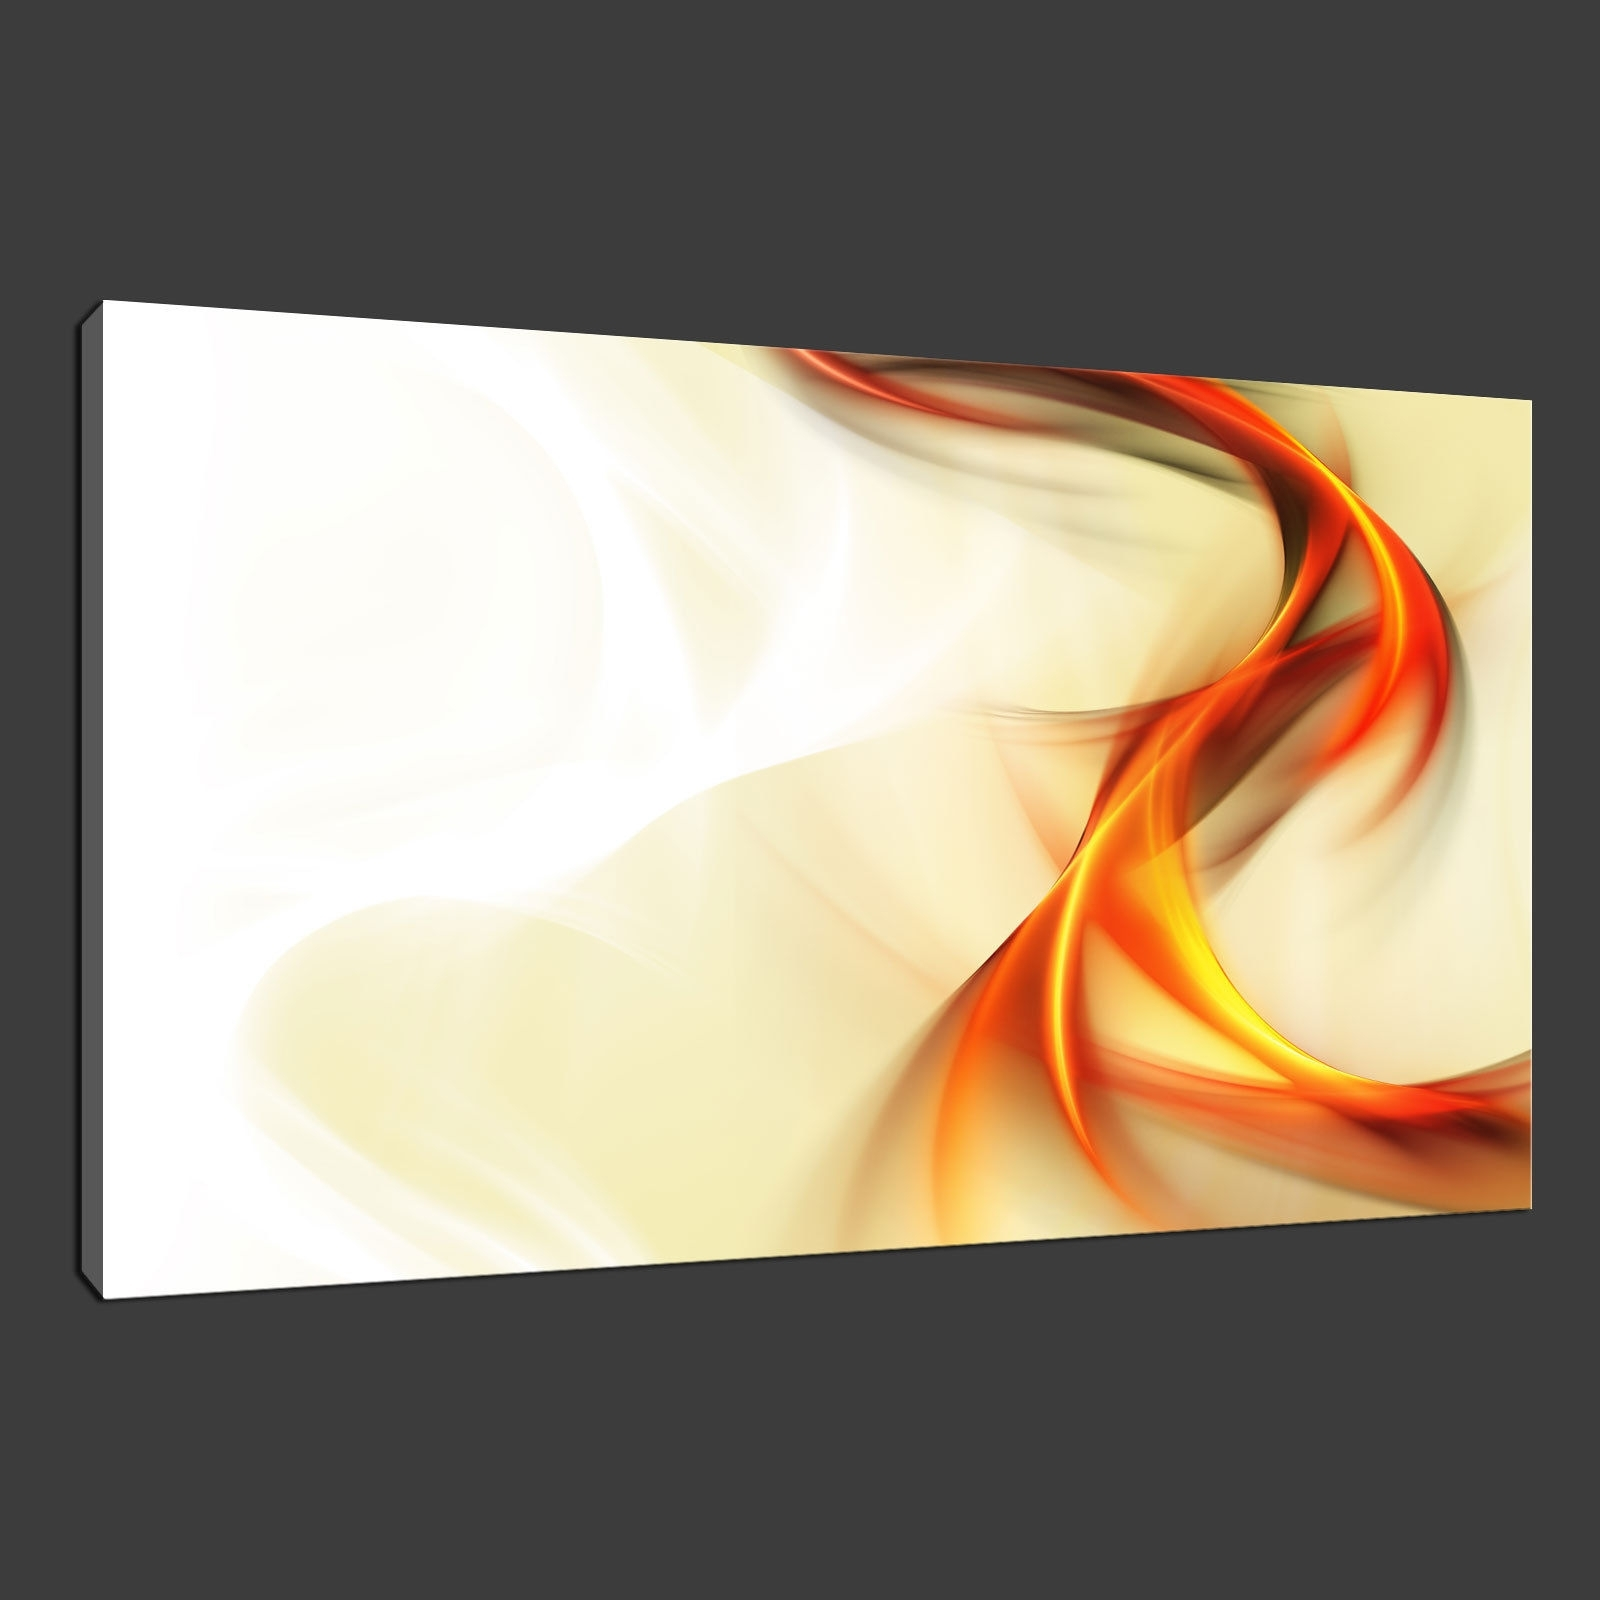 Gallery of Orange Canvas Wall Art (View 11 of 15 Photos)